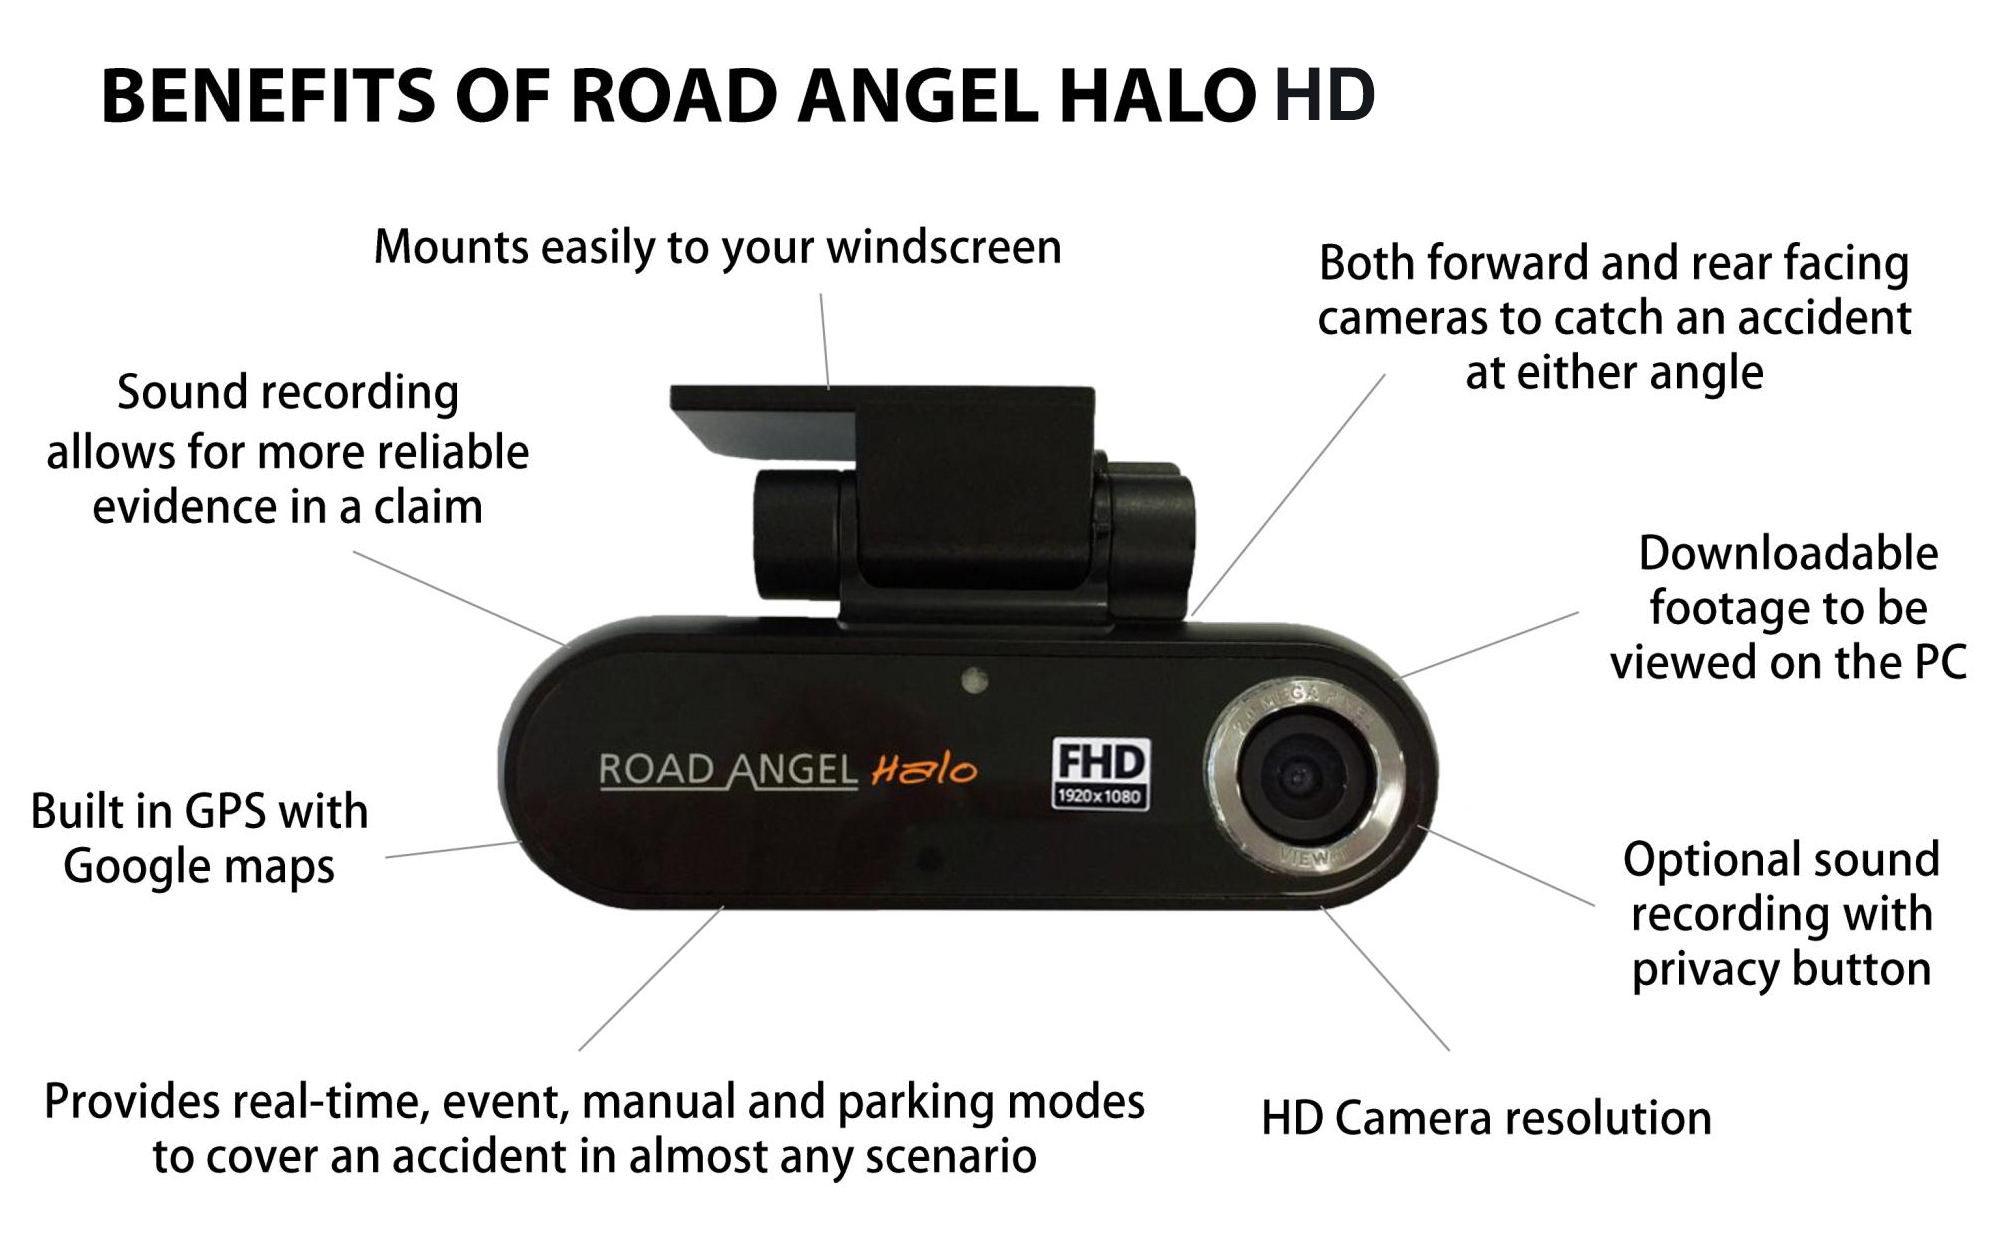 Benefits of Road Angel Halo HD